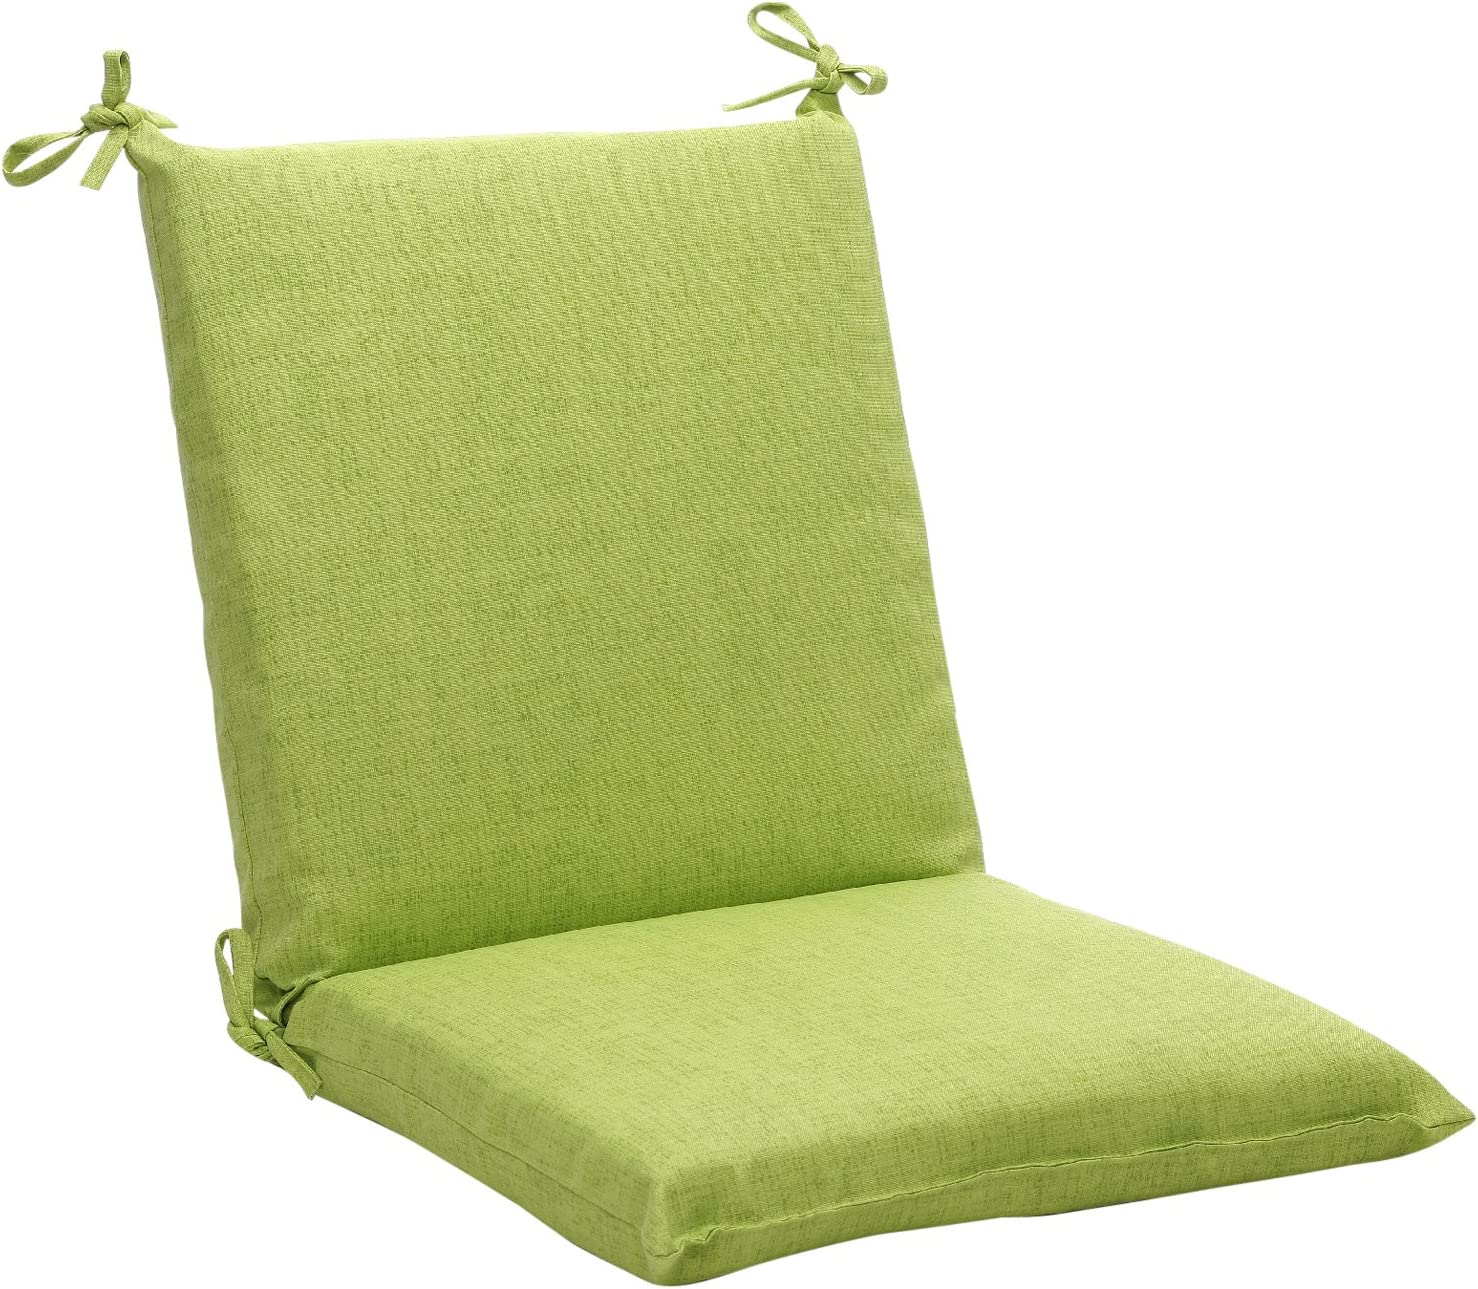 Pillow Perfect Indoor Outdoor Green Textured Solid Square Chair Cushion